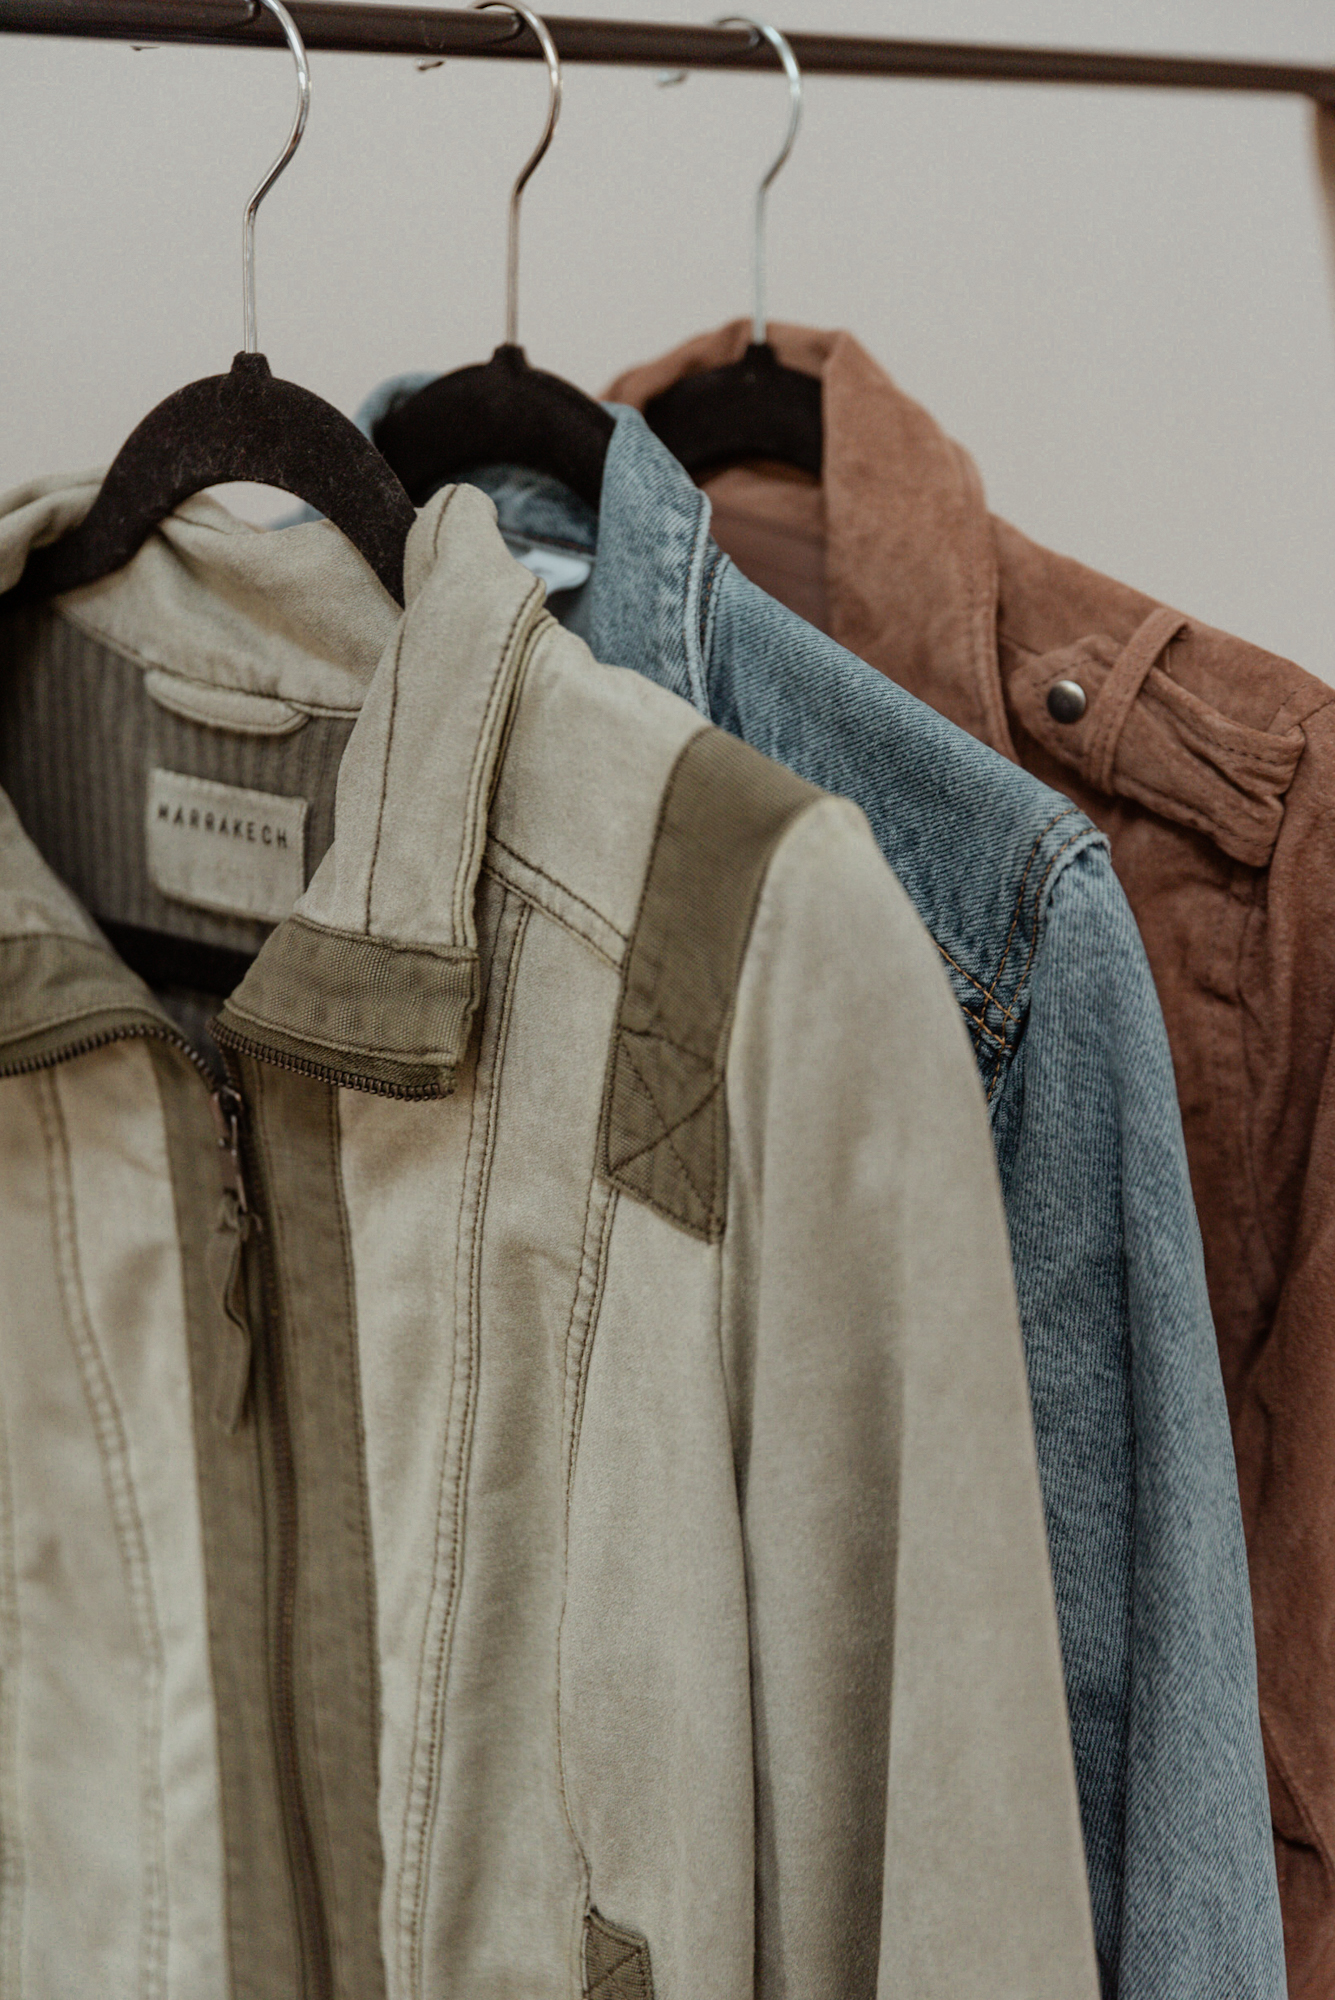 Some great capsule wardrobe outerwear samples.